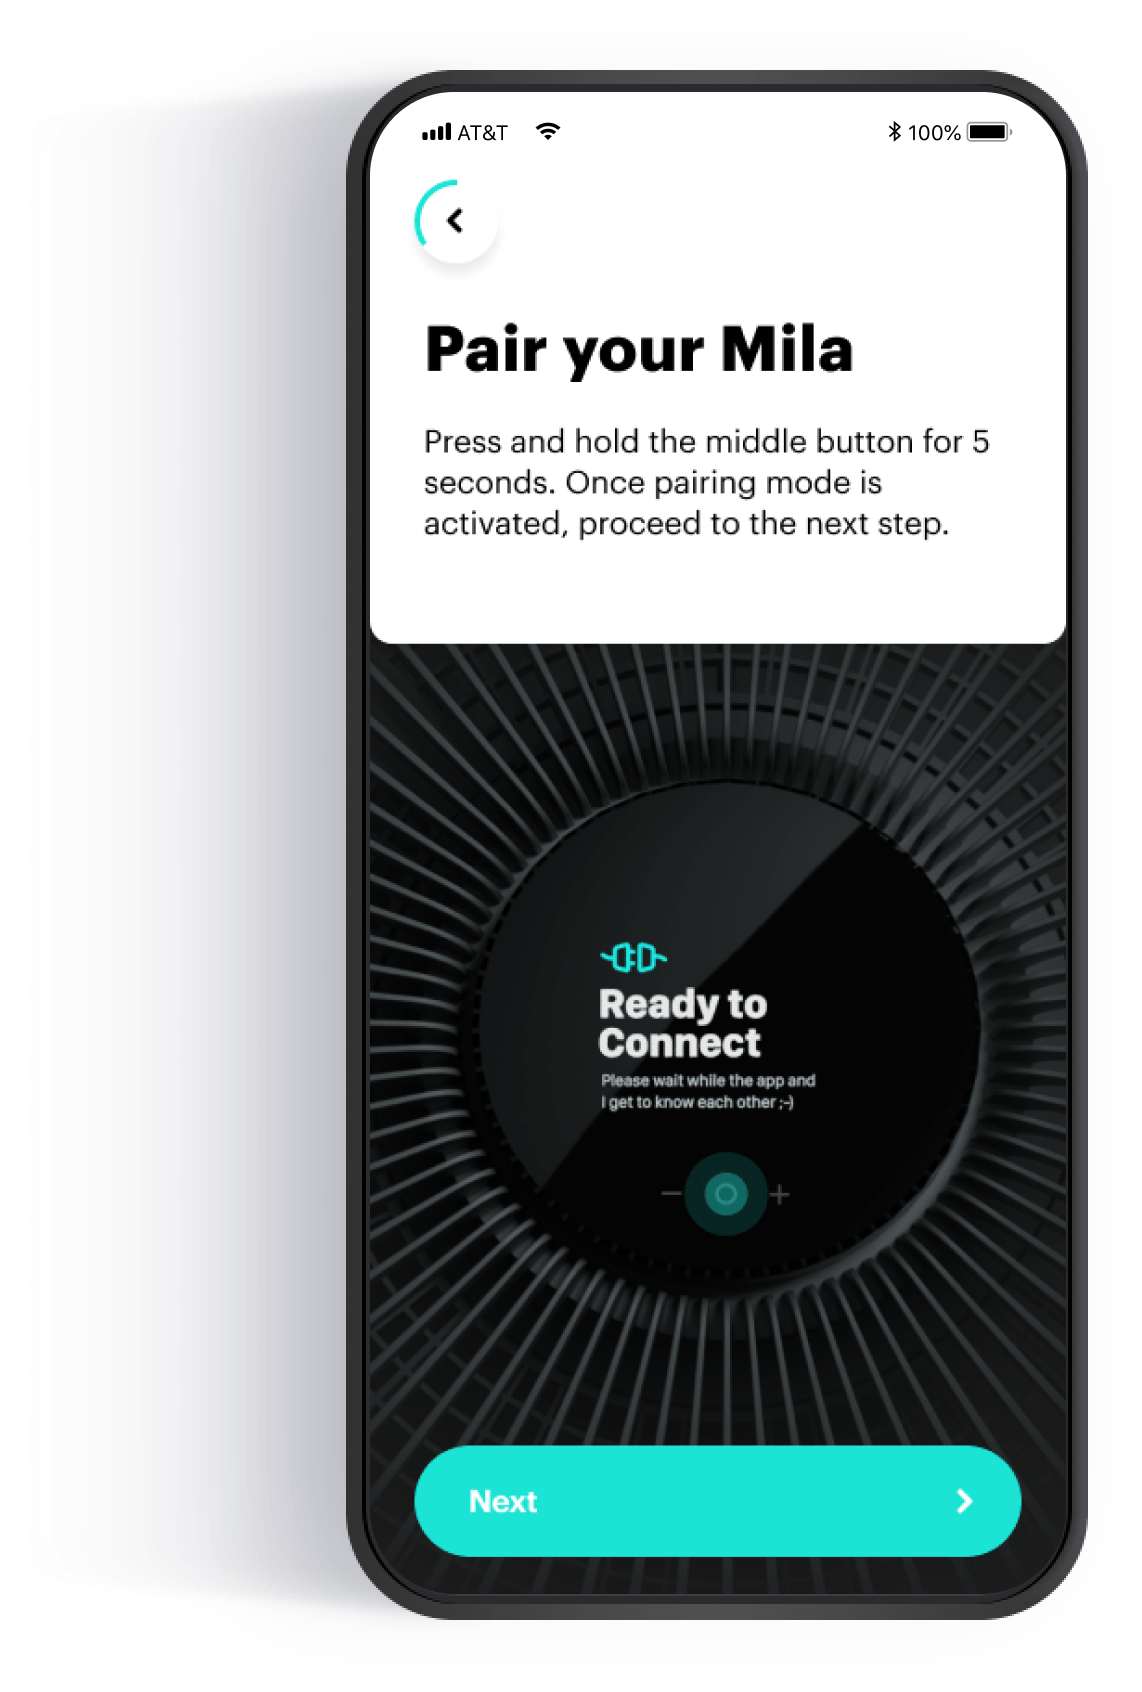 pair-your-mila